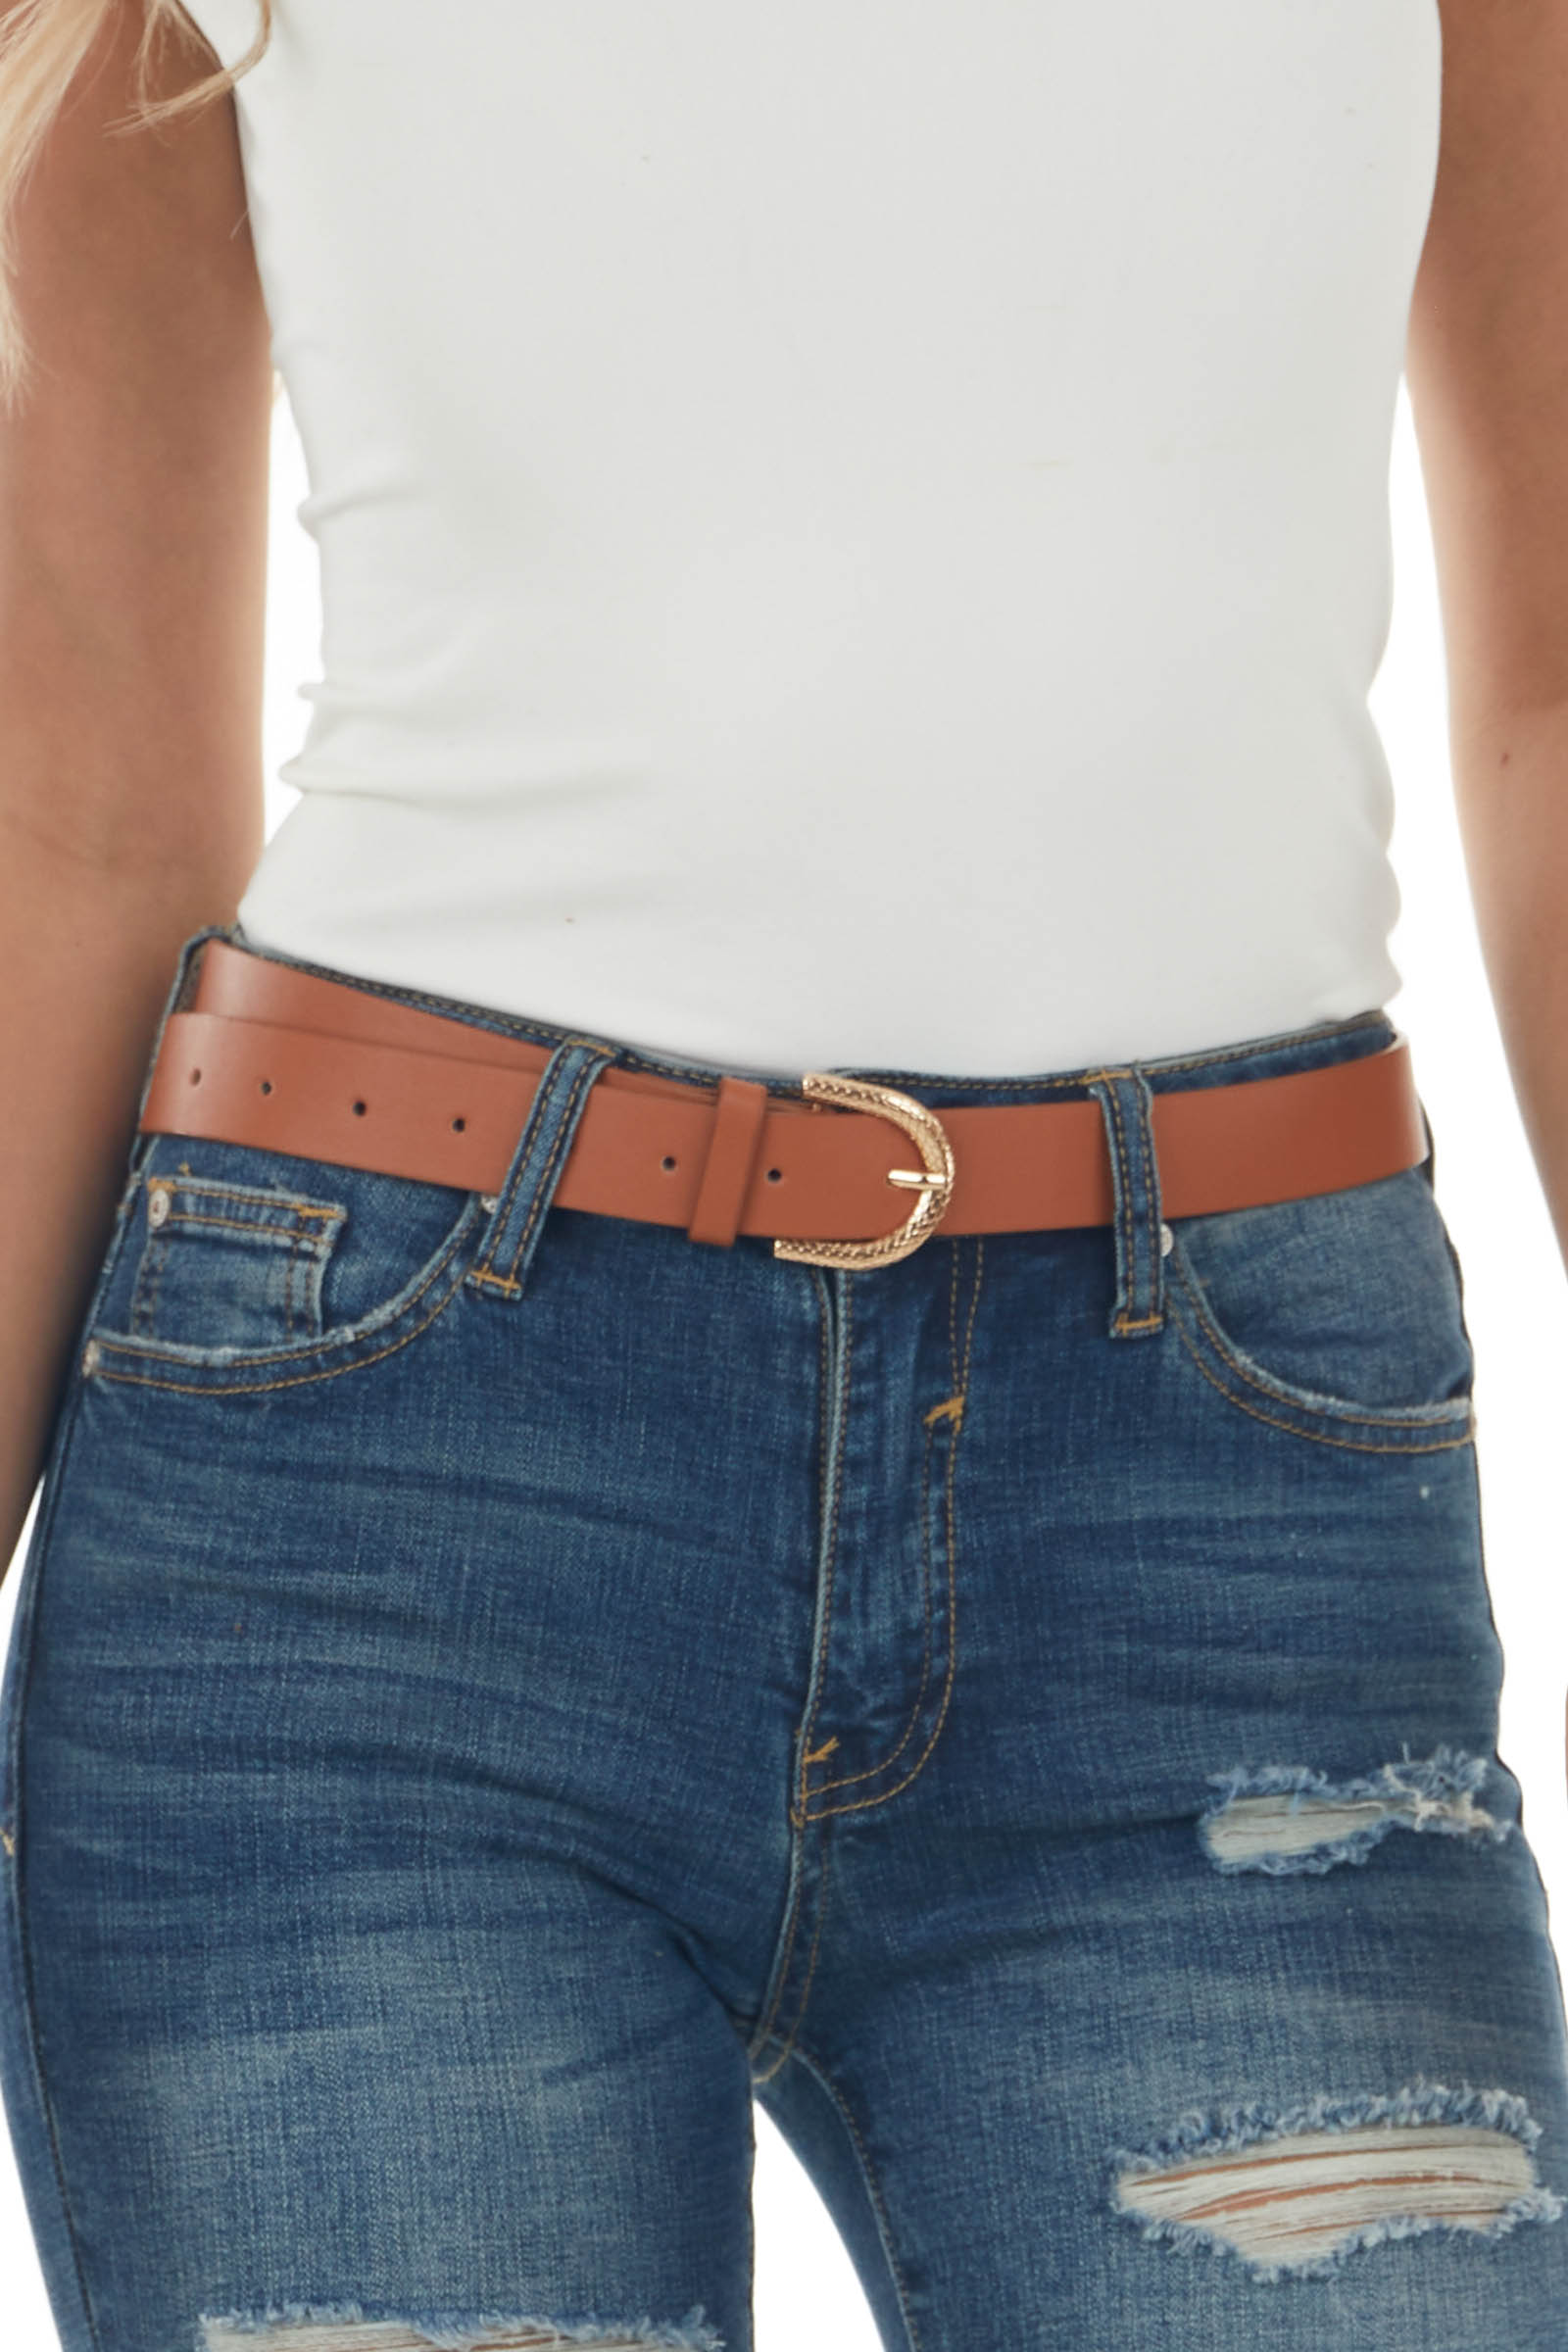 Spice Pleather Belt with Gold Snakeskin Buckle